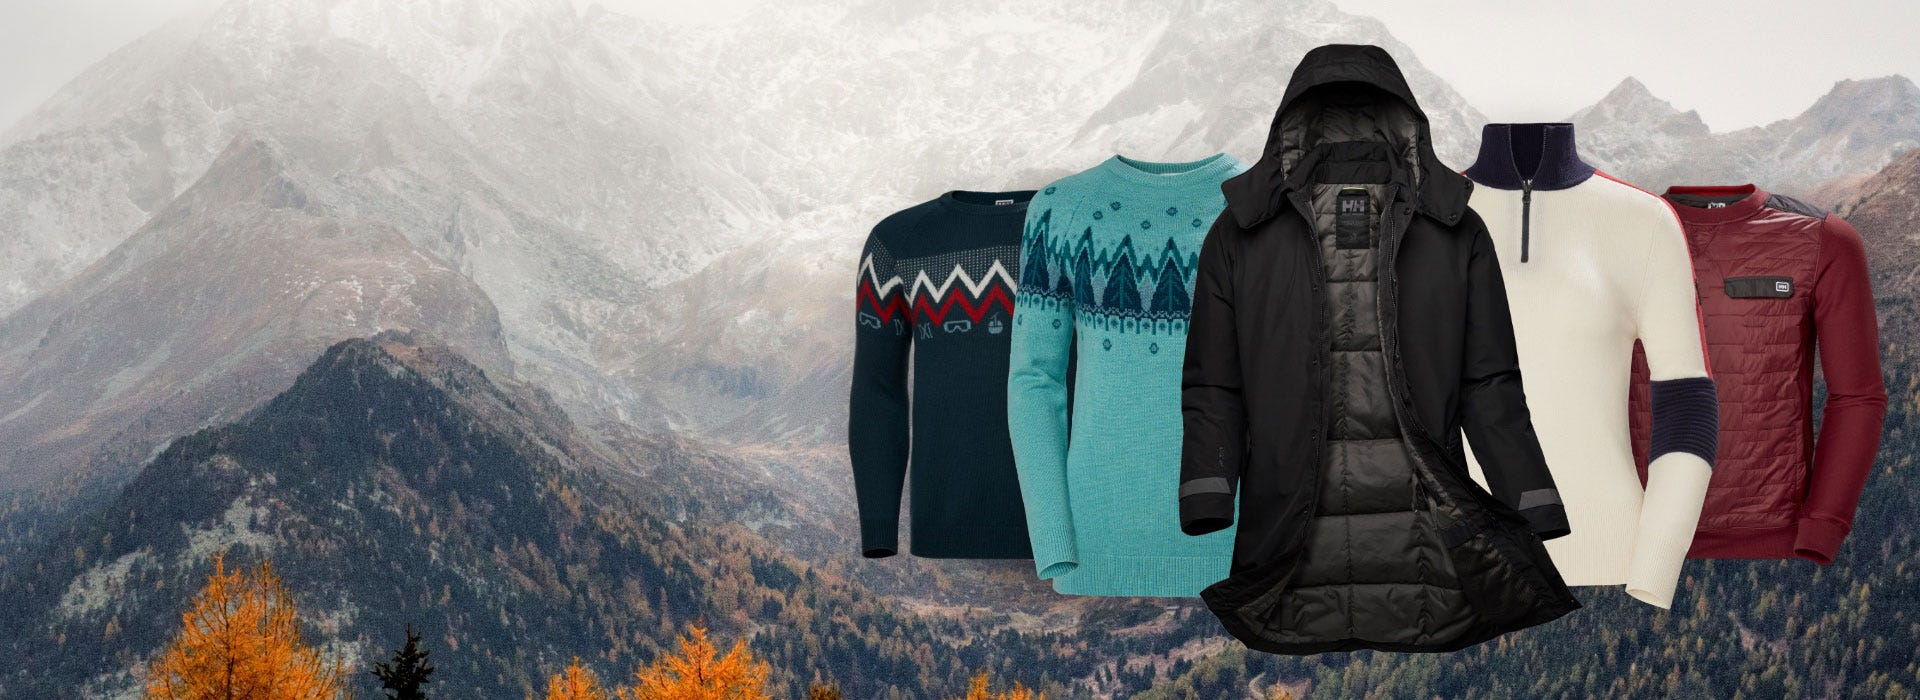 NEW ARRIVALS PRODUCTS ON MOUNTAIN BACKDROP